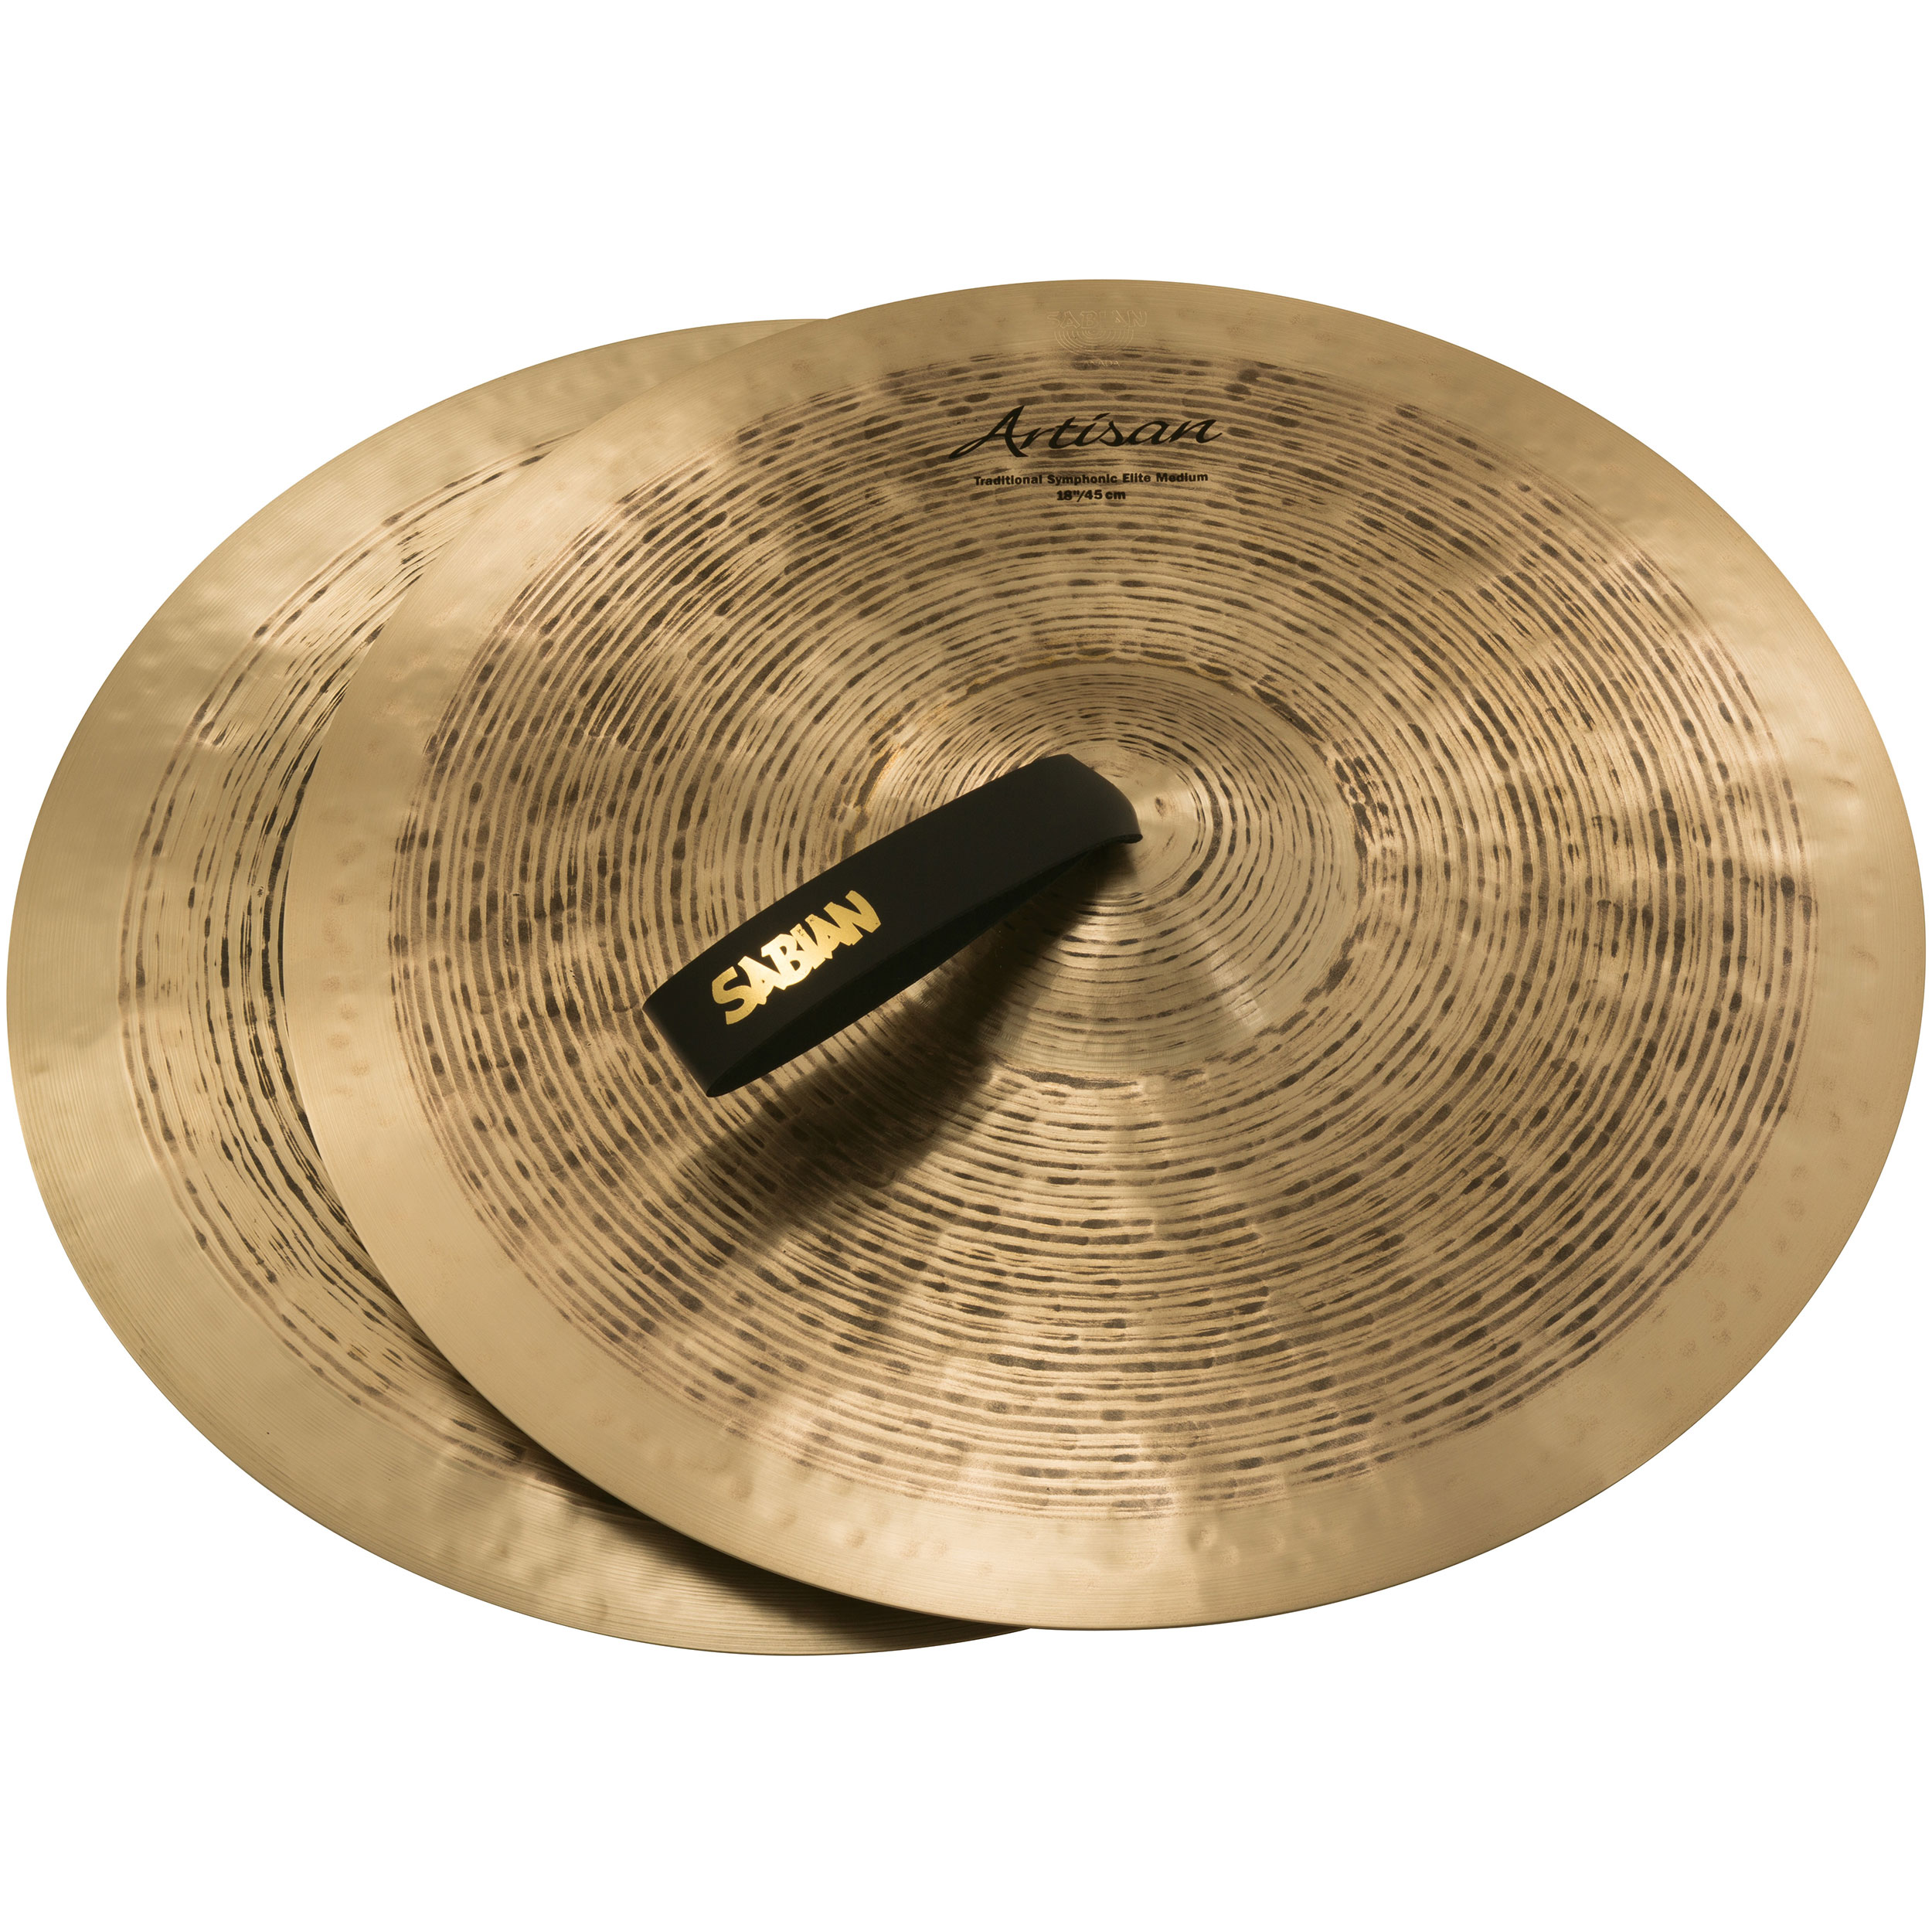 "Sabian 18"" Artisan Traditional Symphonic Elite Medium Crash Cymbal Pair"